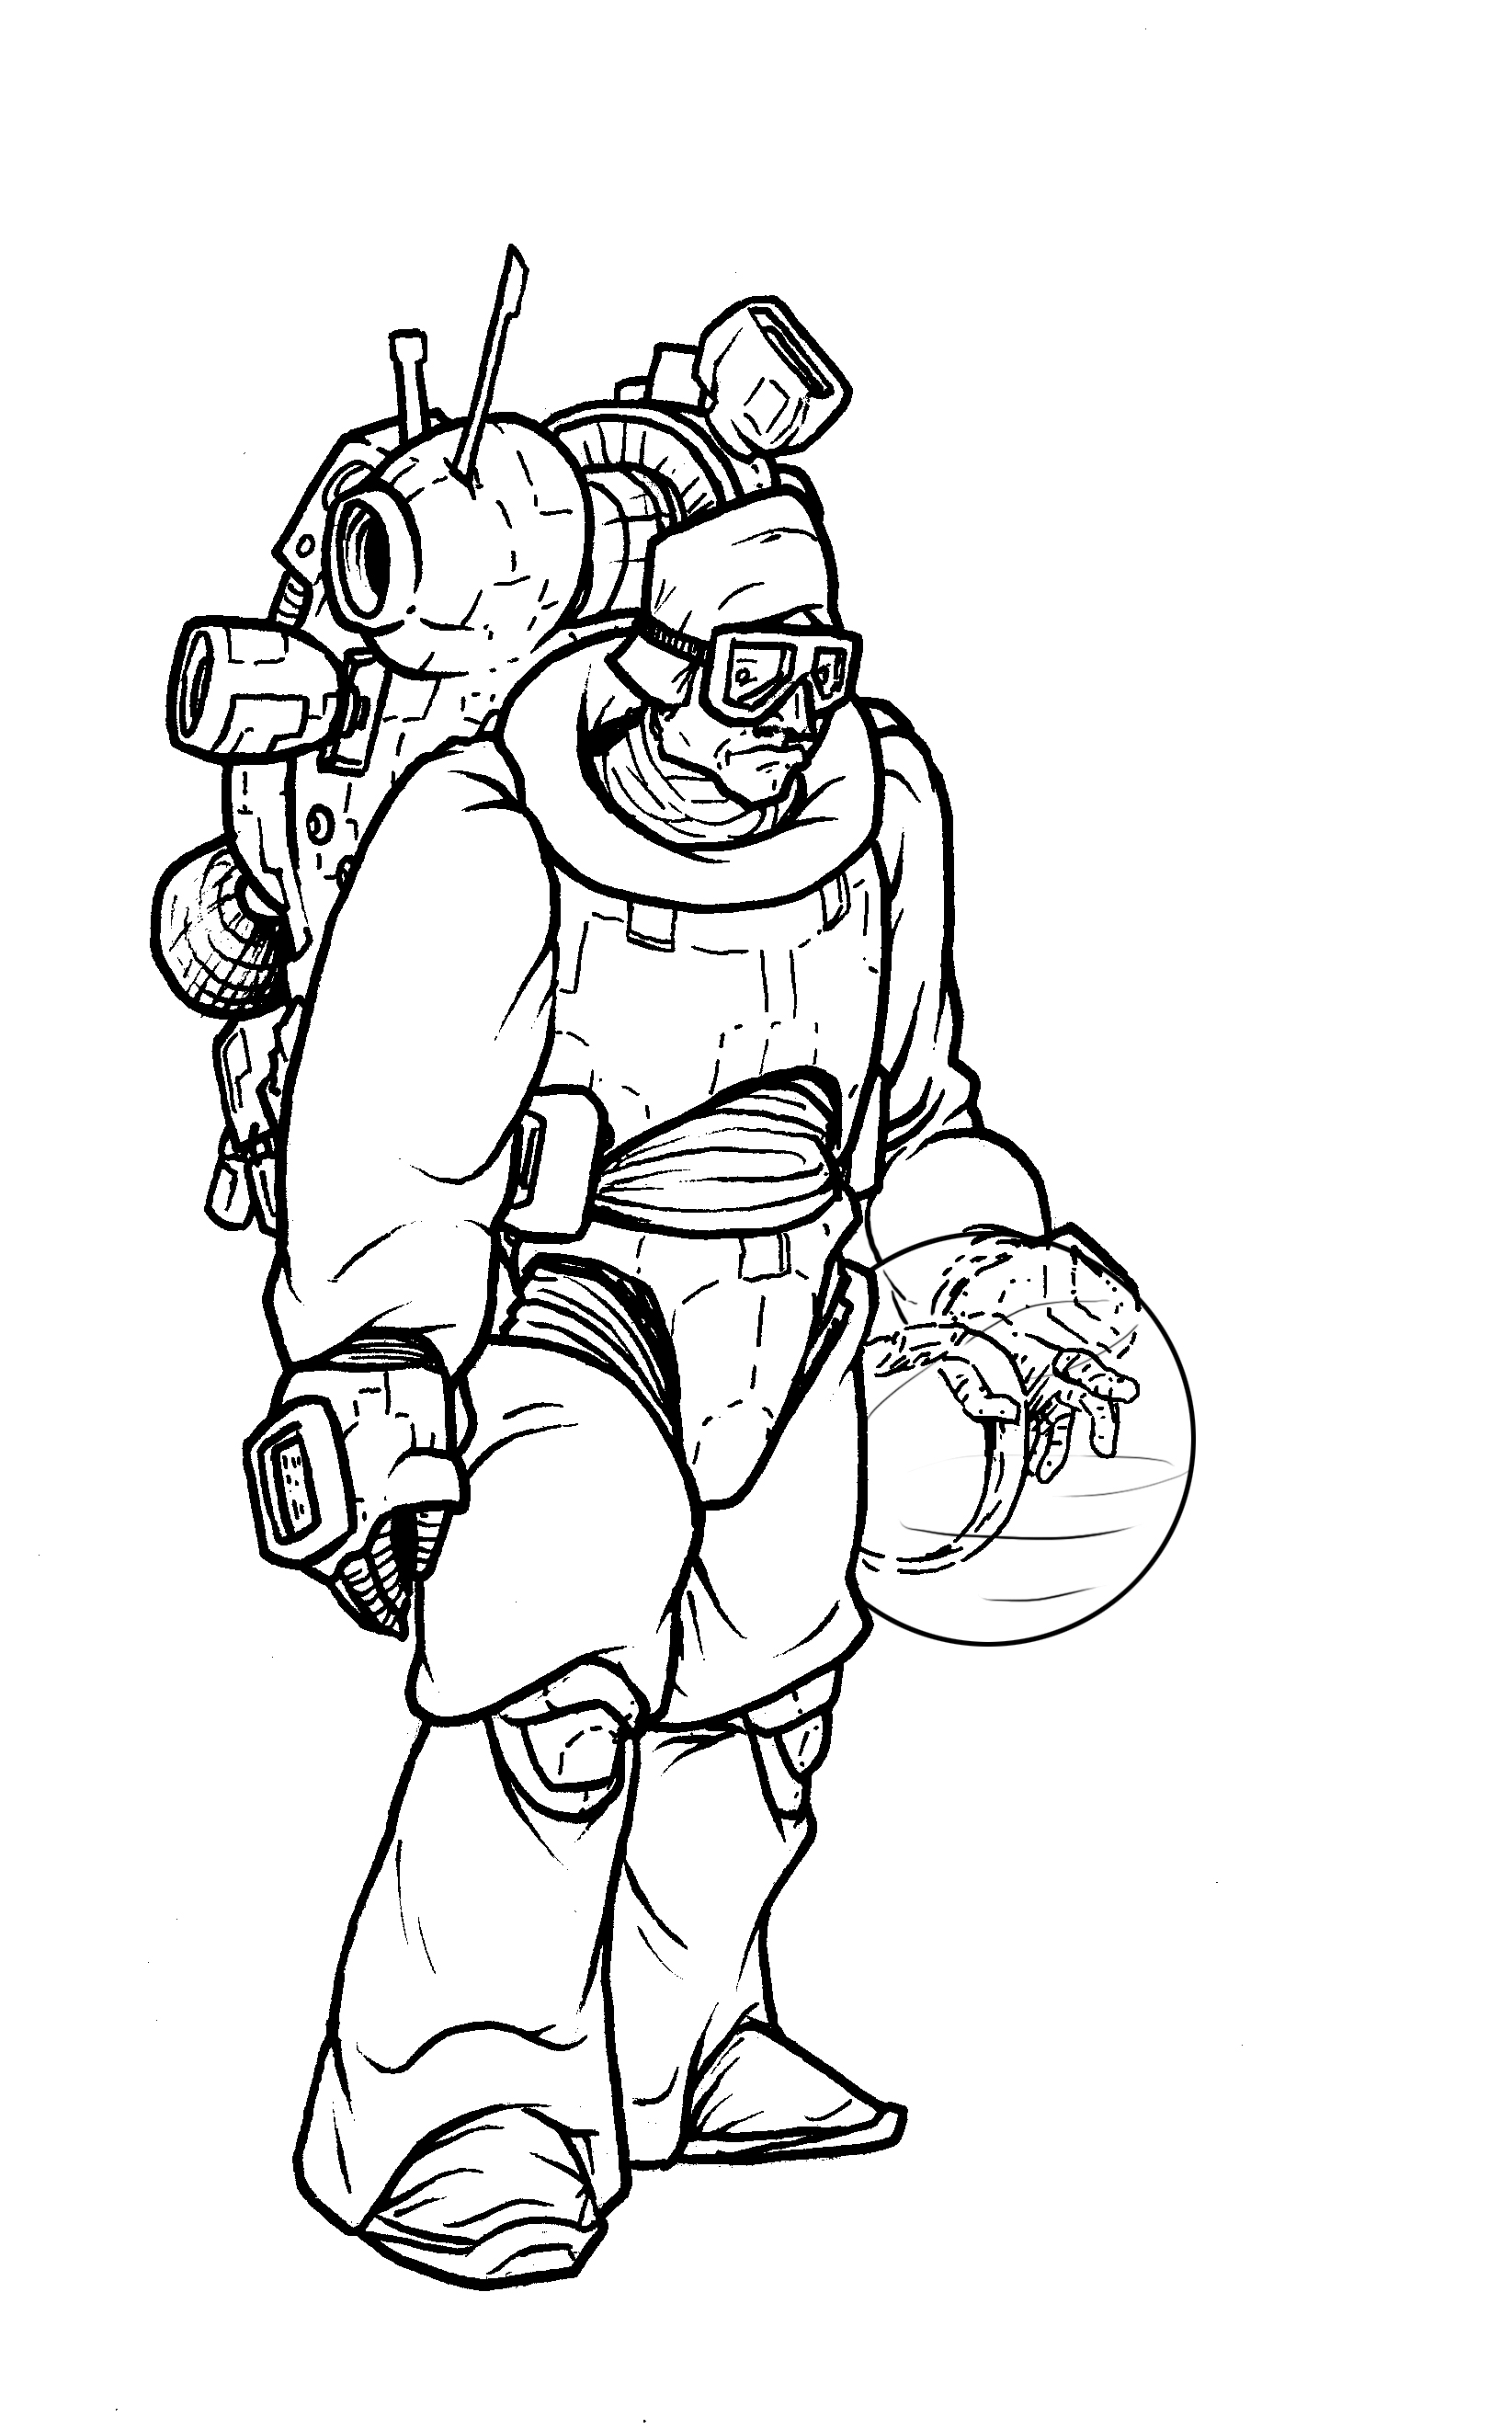 space suit drawing - photo #26